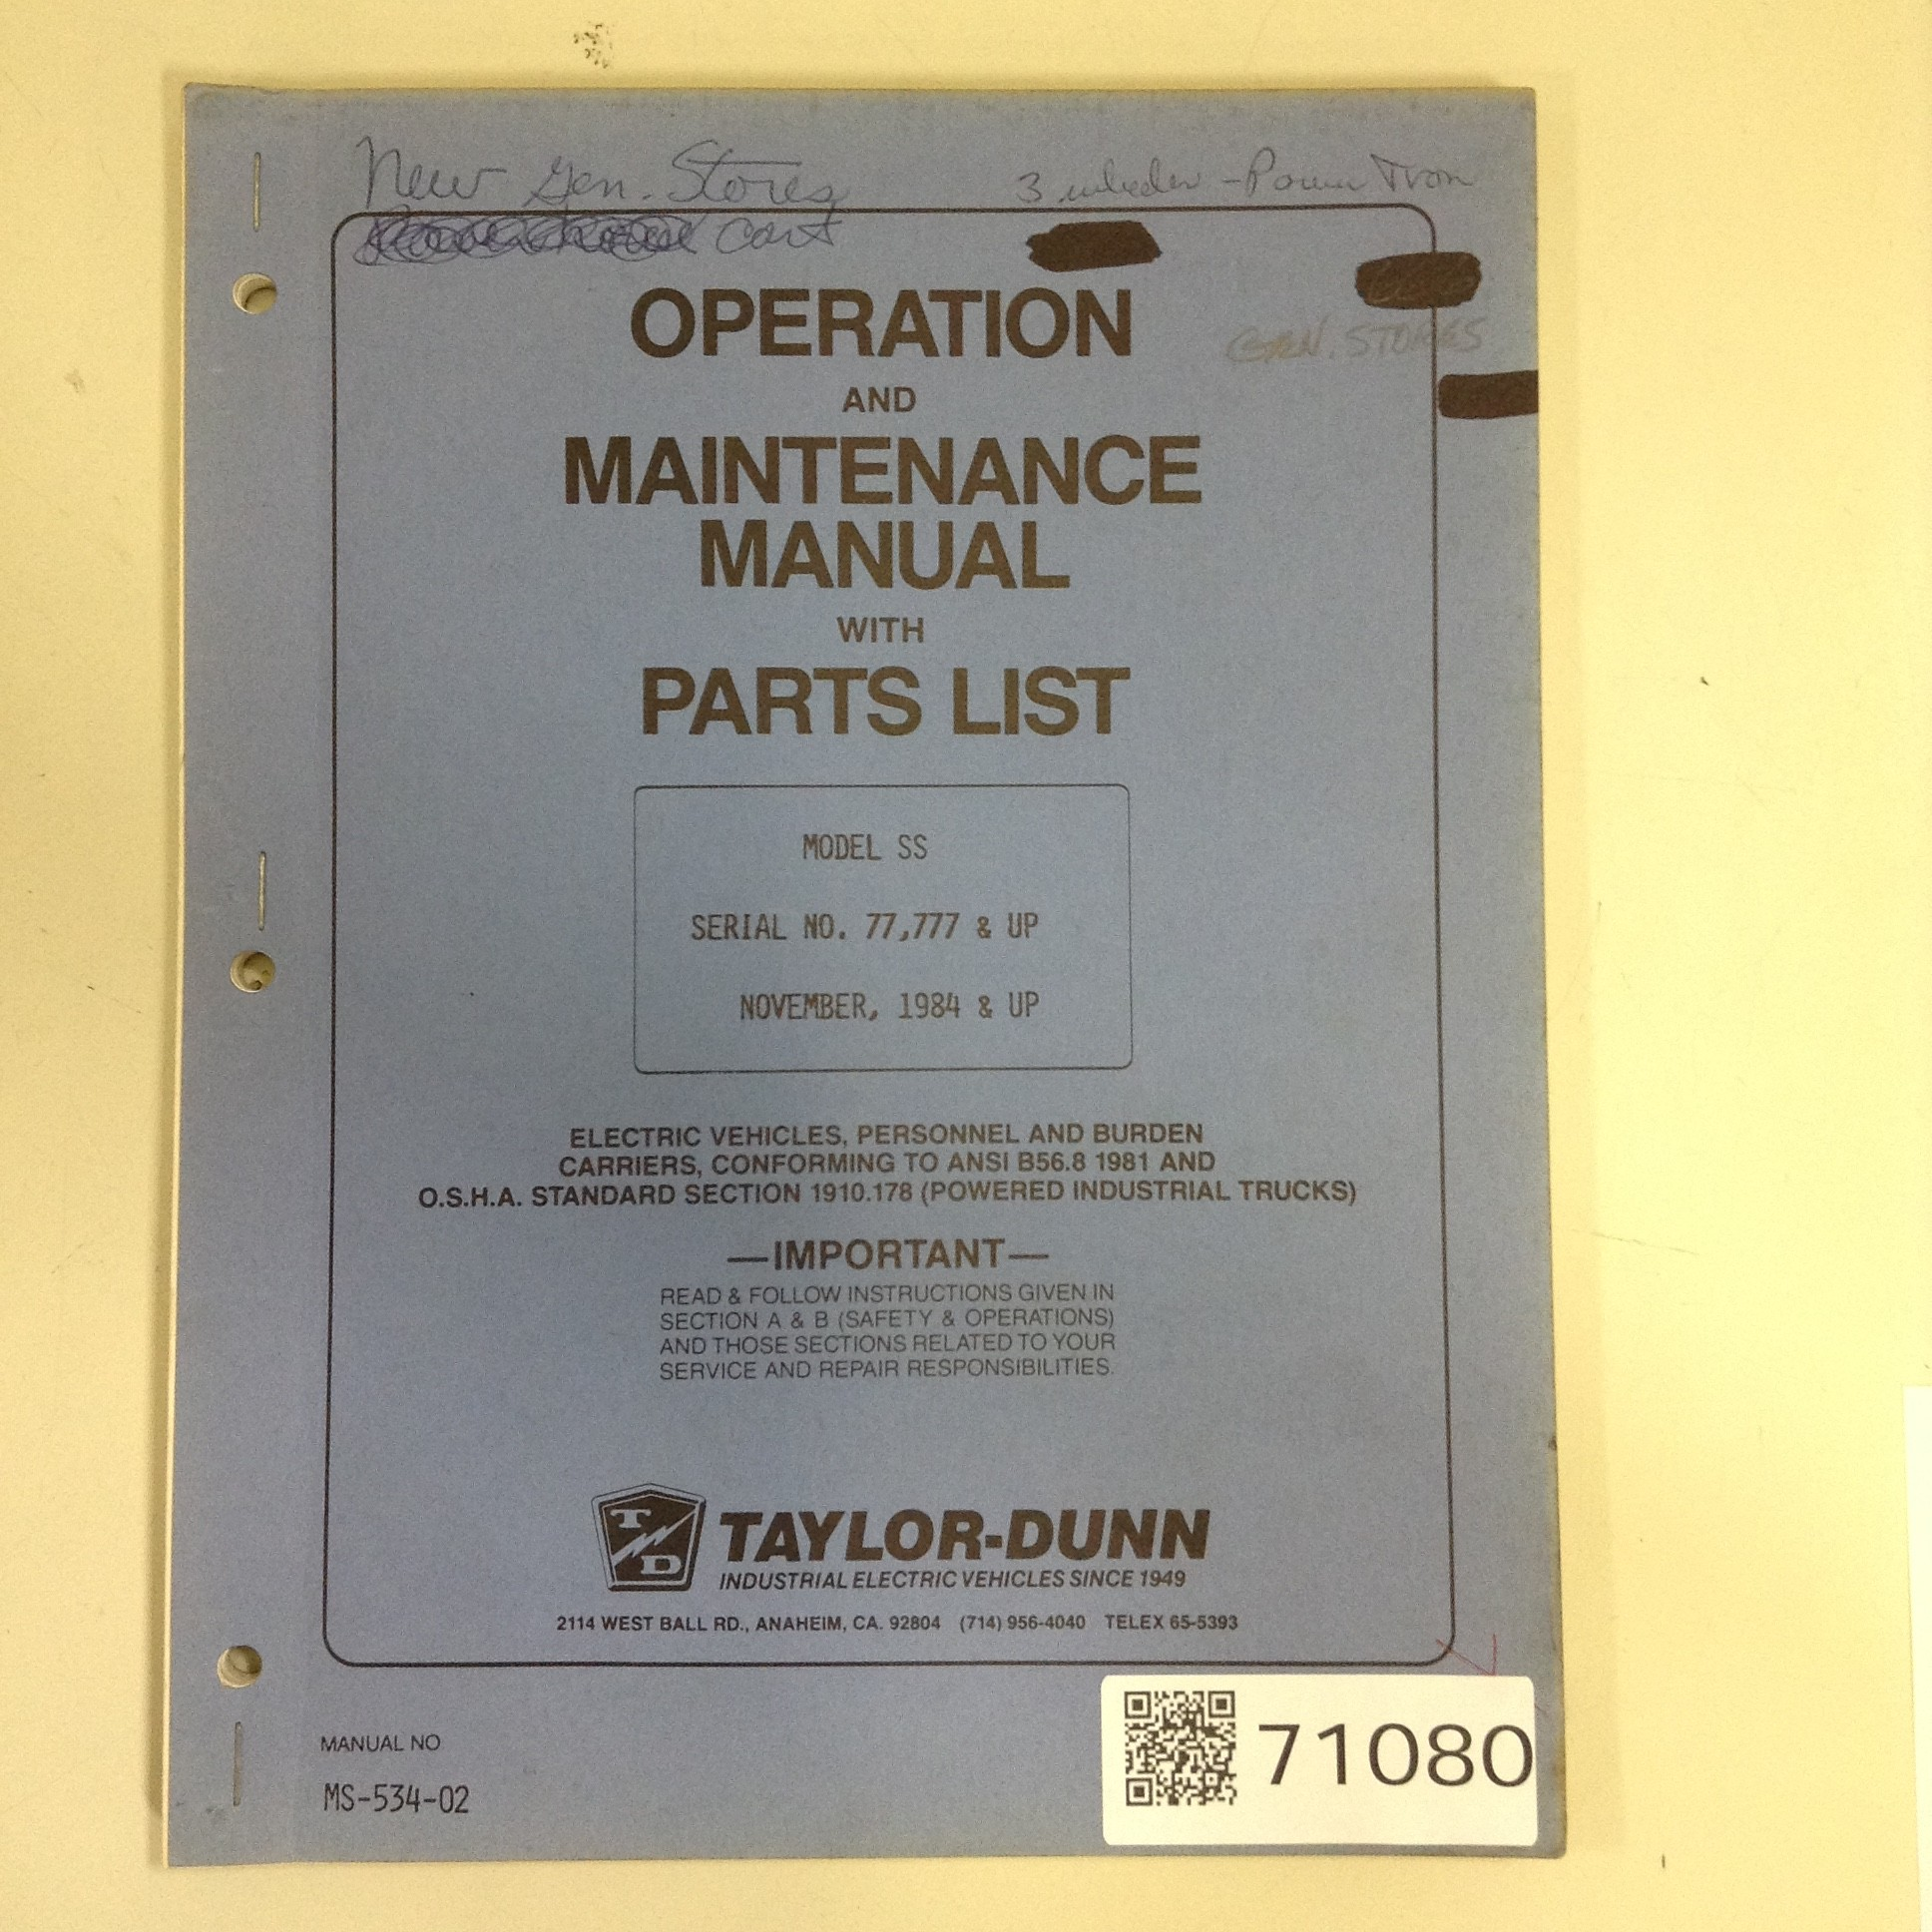 Taylor Dunn Manuals - User Guide Manual That Easy-to-read •